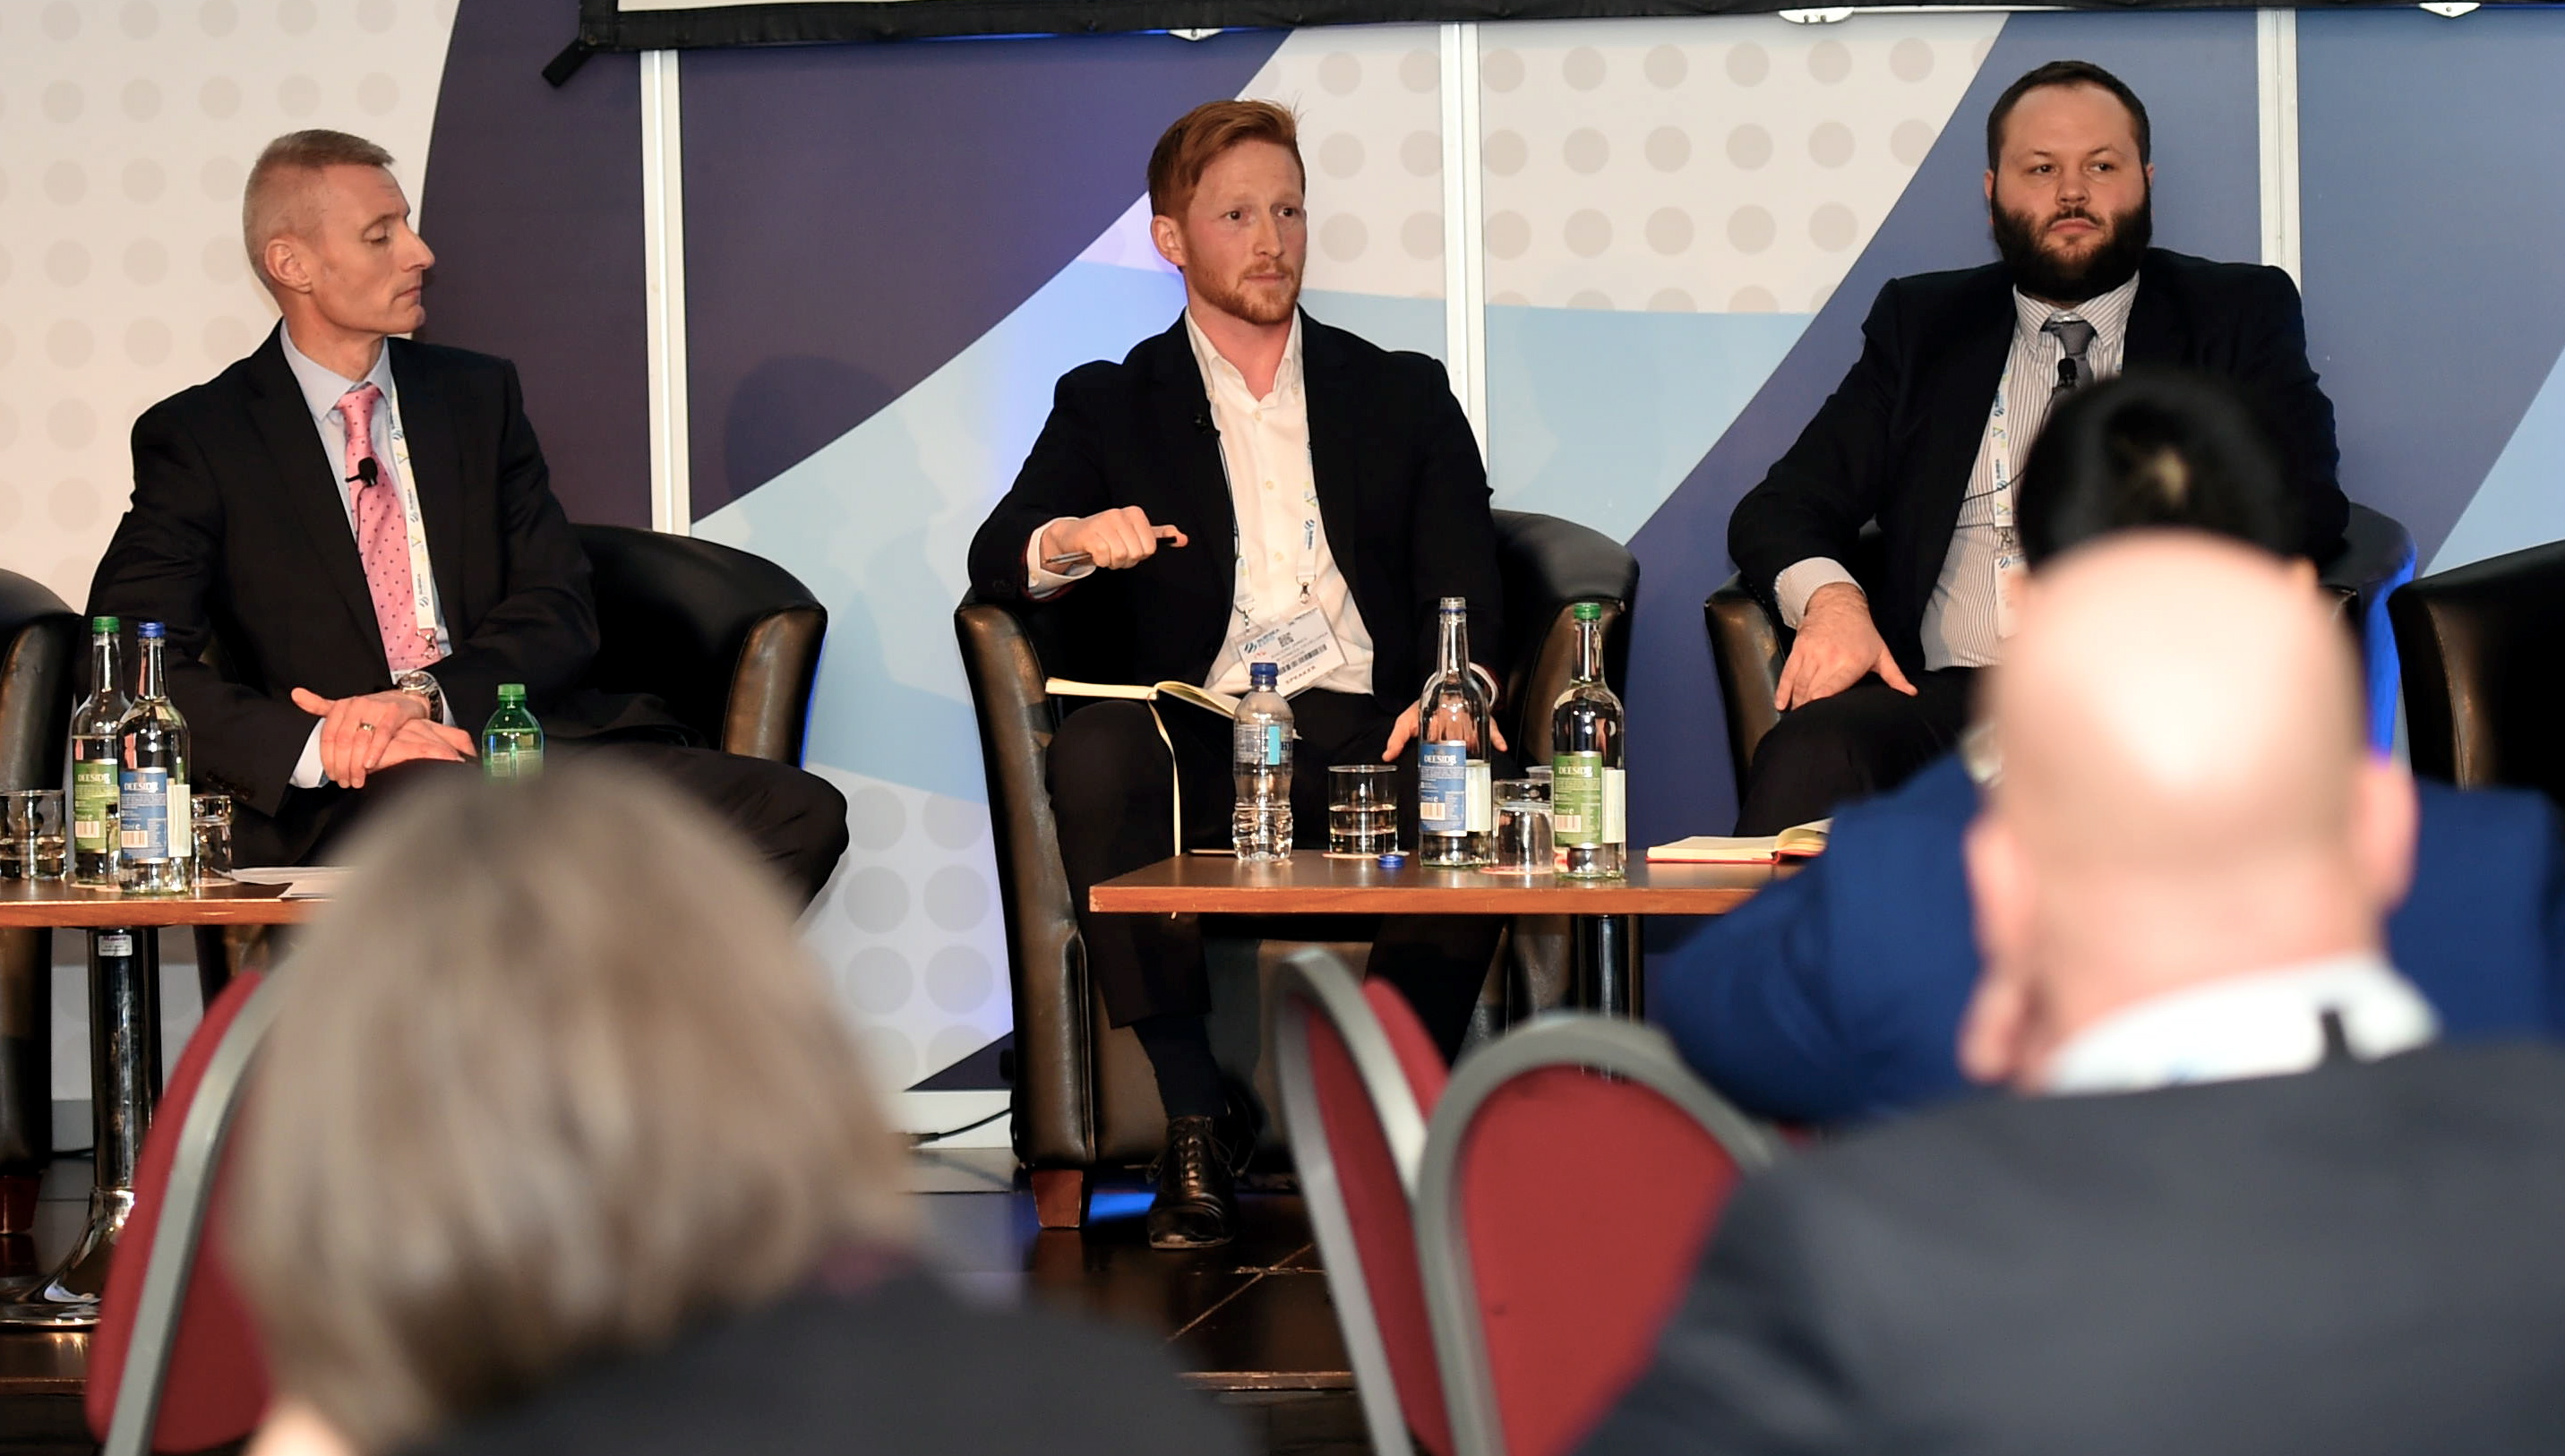 PJ; Renewable UK panel session at Subsea Expo 2019 at the AECC. Pictured from left, David Hinshelwood, SSE,  Rhodri James, Equinor and Richard Copeland. 05/02/19 Picture by HEATHER FOWLIE